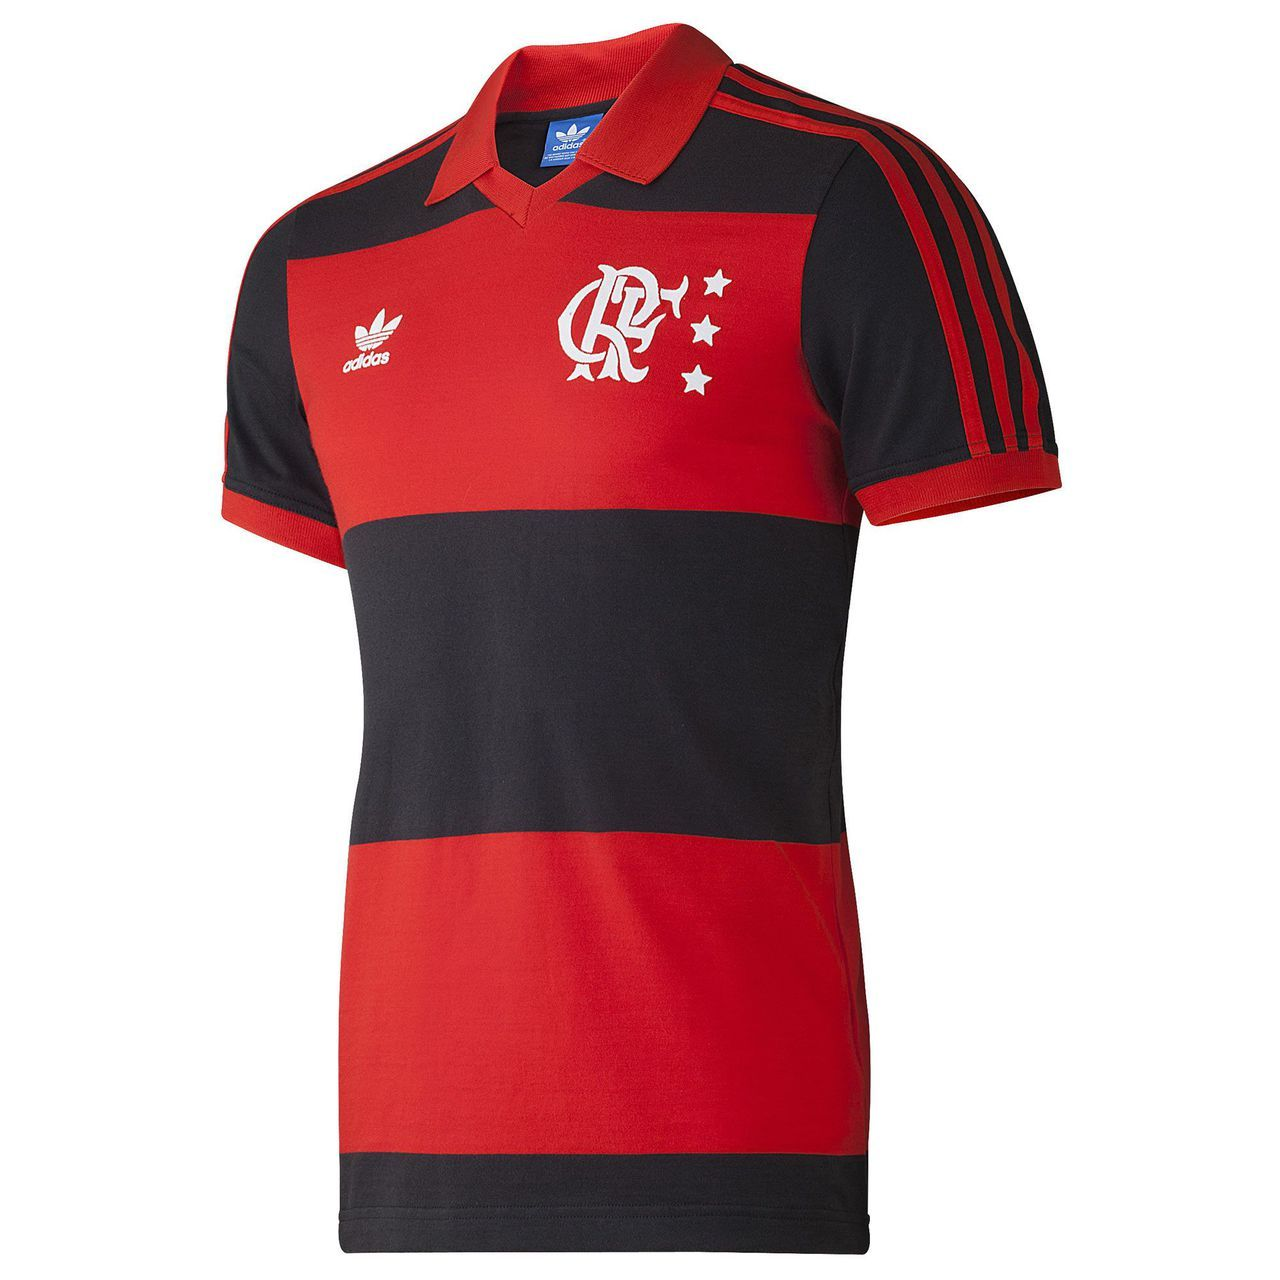 f685bb70ef4 Adidas Flamengo 80s Retro Football Shirt - Red   Black